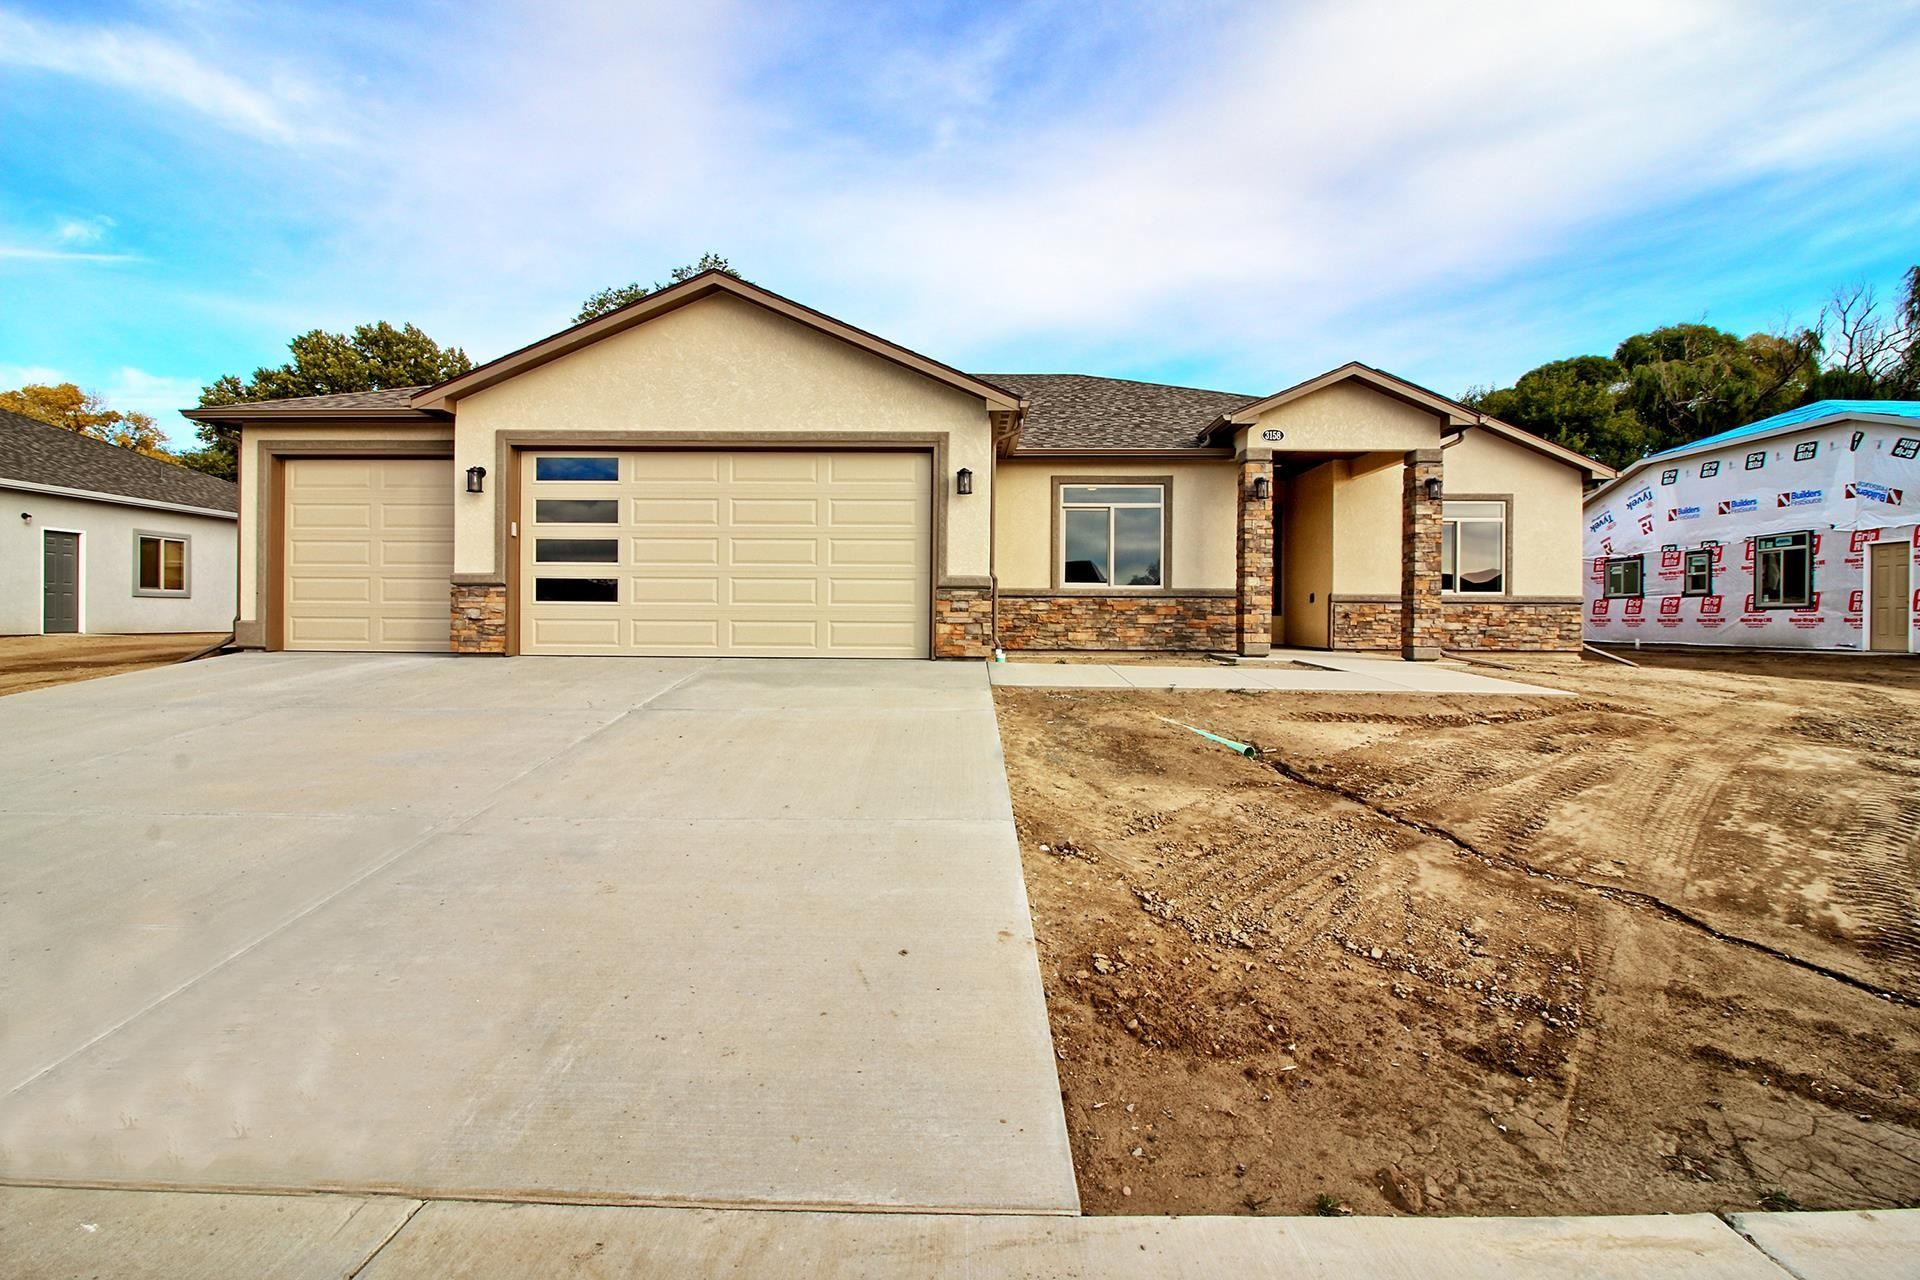 Photo of 3158 Saddle Gulch Drive, Grand Junction, CO 81504 (MLS # 20215703)